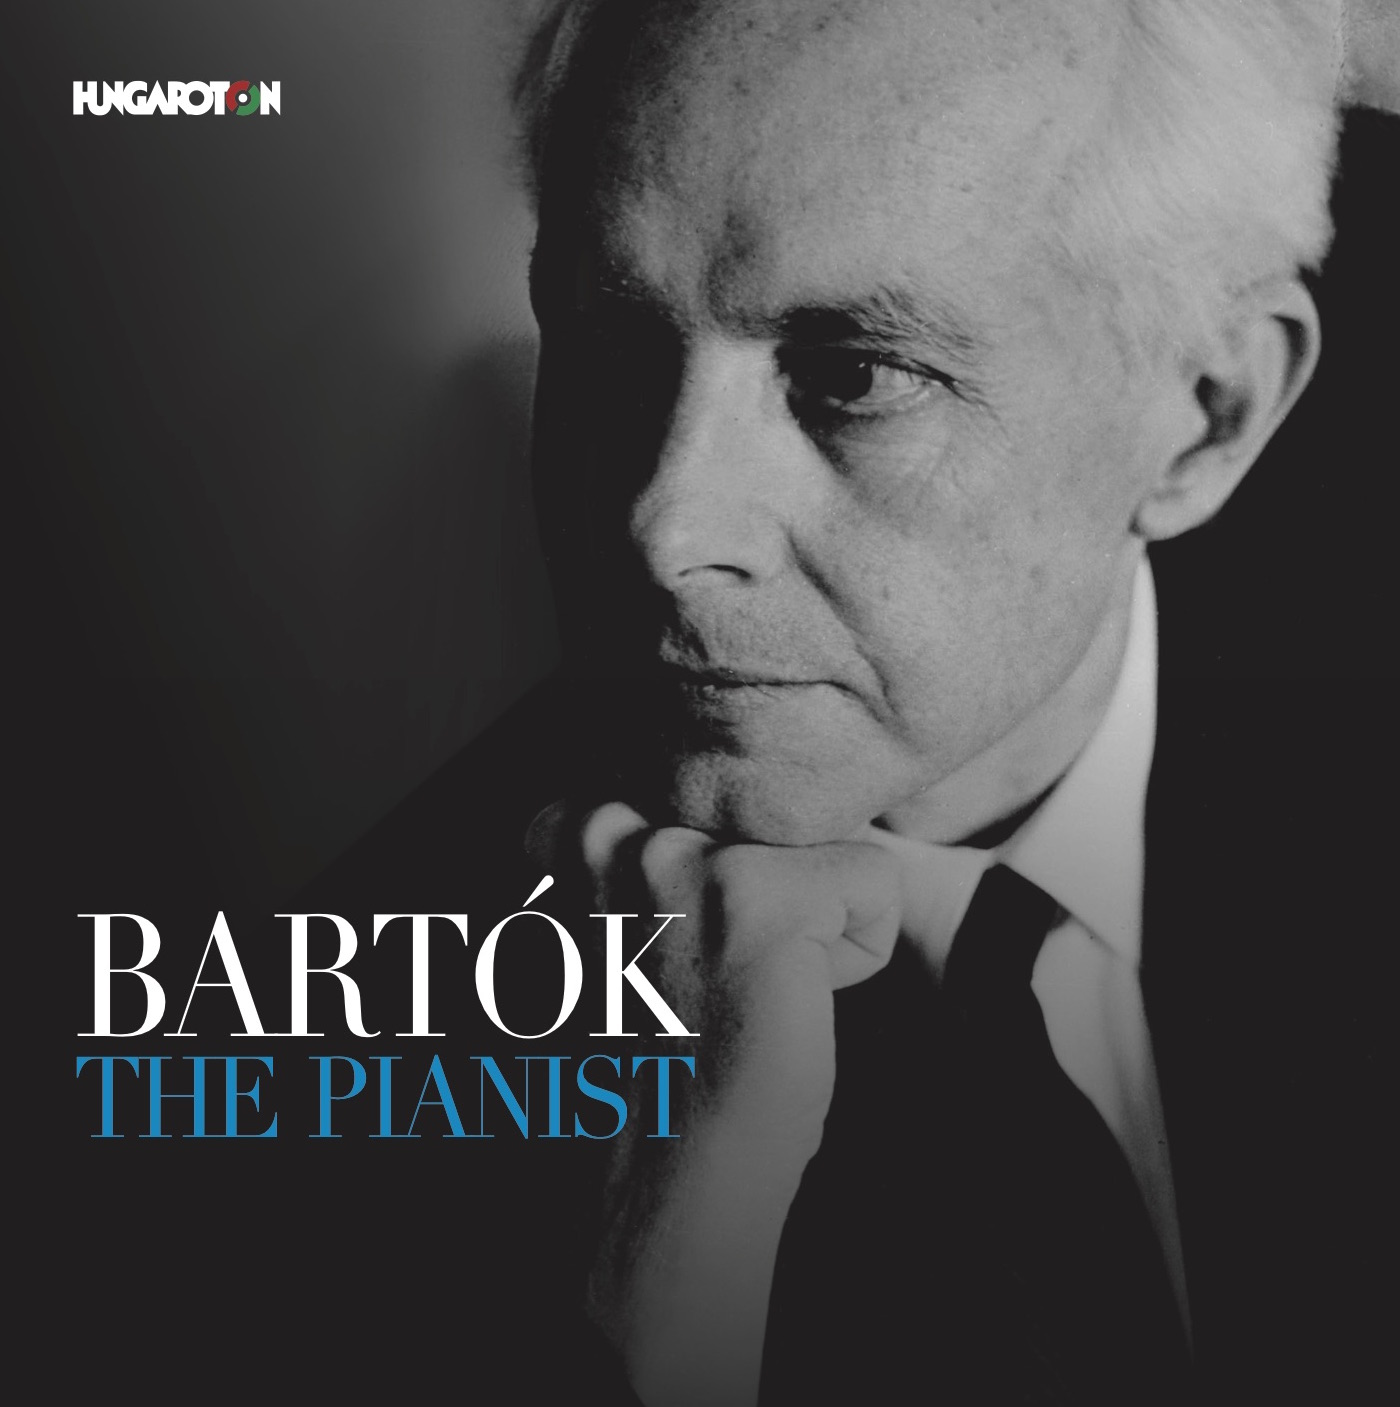 The International Success of Hungaroton: ICMA-Nomination in Two Categories - Hungaroton has achieved important international recognition at the 2017 vote of the International Classical Music Awards (ICMA) with two of its issues. In the Concerto category the Beethoven album of Dénes Várjon and Concerto Budapest, while in the Historical category the selection Bartók the Pianist, have been included among the official nominations of ICMA – the announcement was made on November 17, after the vote by the chairman of the Jury, Remy Franck, the musicologist from Luxemburg. The Award Ceremony and Gala Concert will be held on 1st April 2017, in the prestigious Leipzig Gewandhaus.